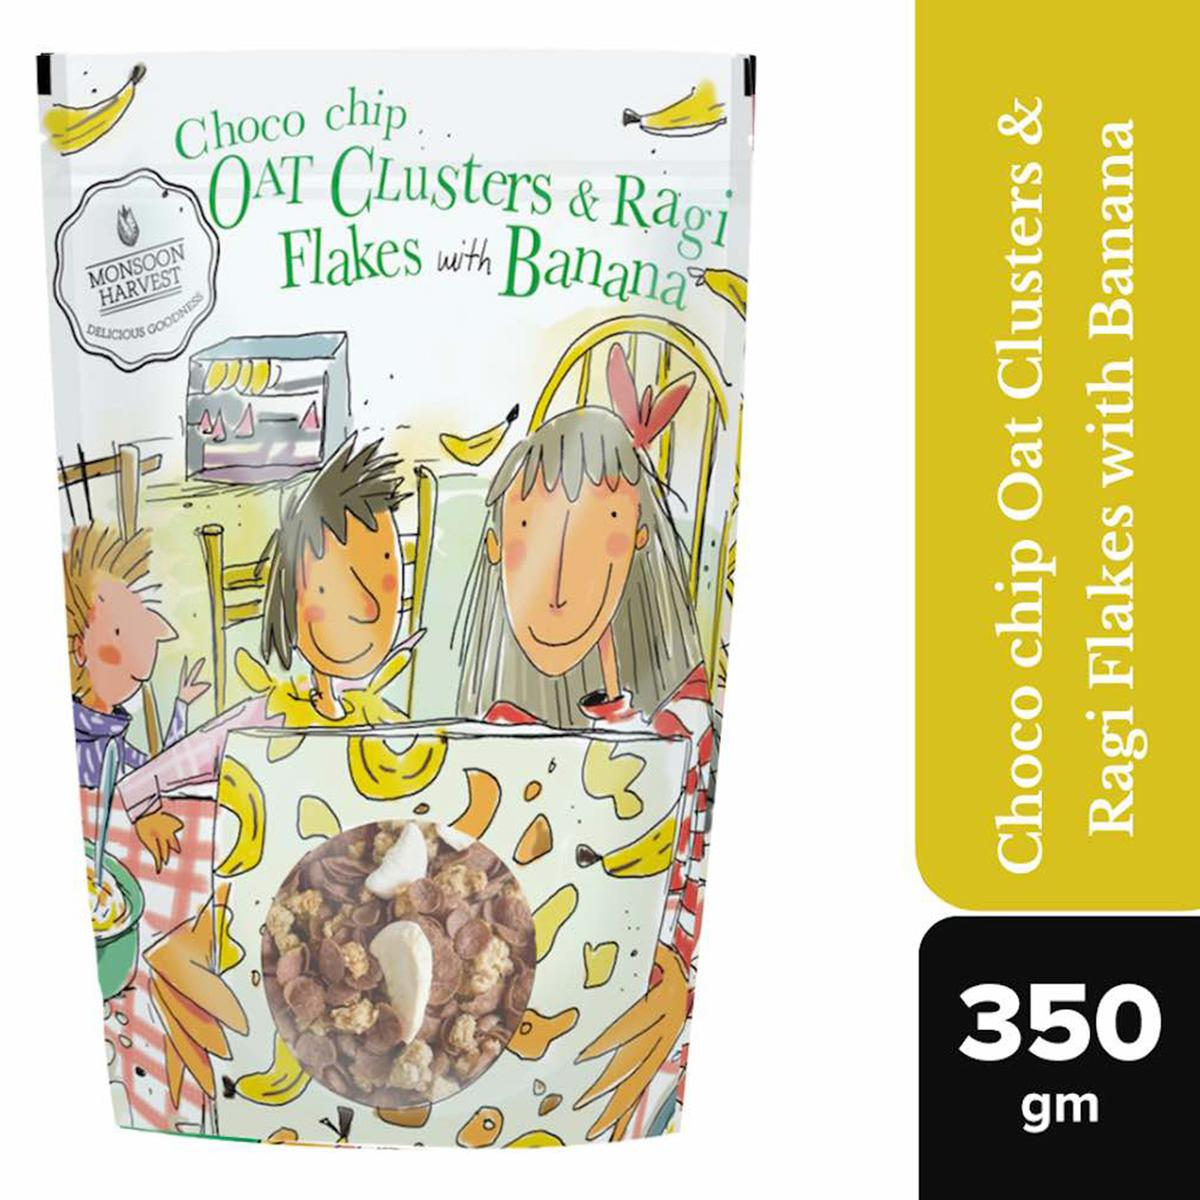 Monsoon Harvest Choco Chip Oat Clusters & Ragi Flakes with Banana 350gms